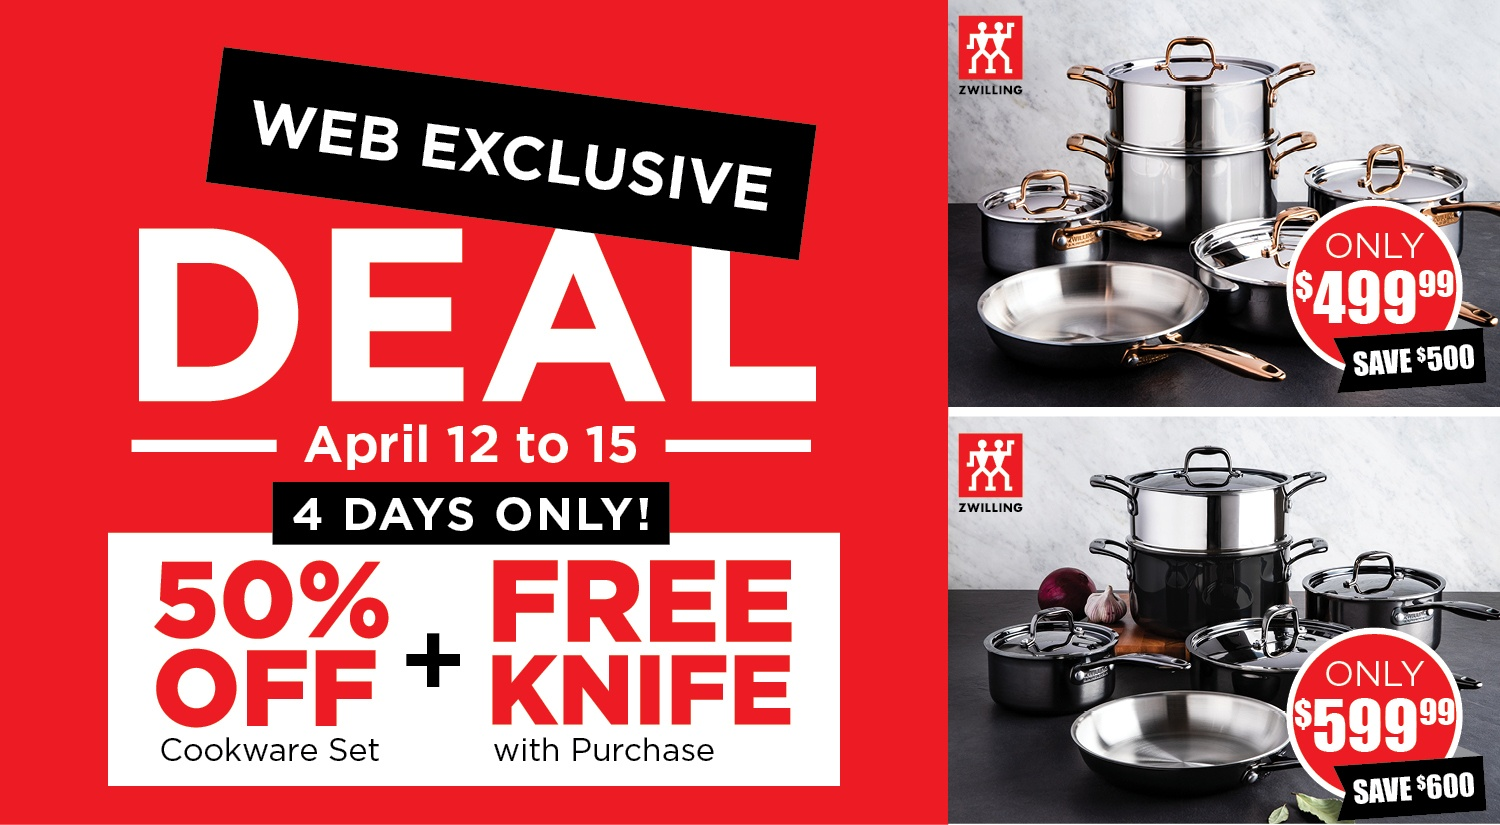 zwilling j.a. henckels web exclusive deal for cookware set